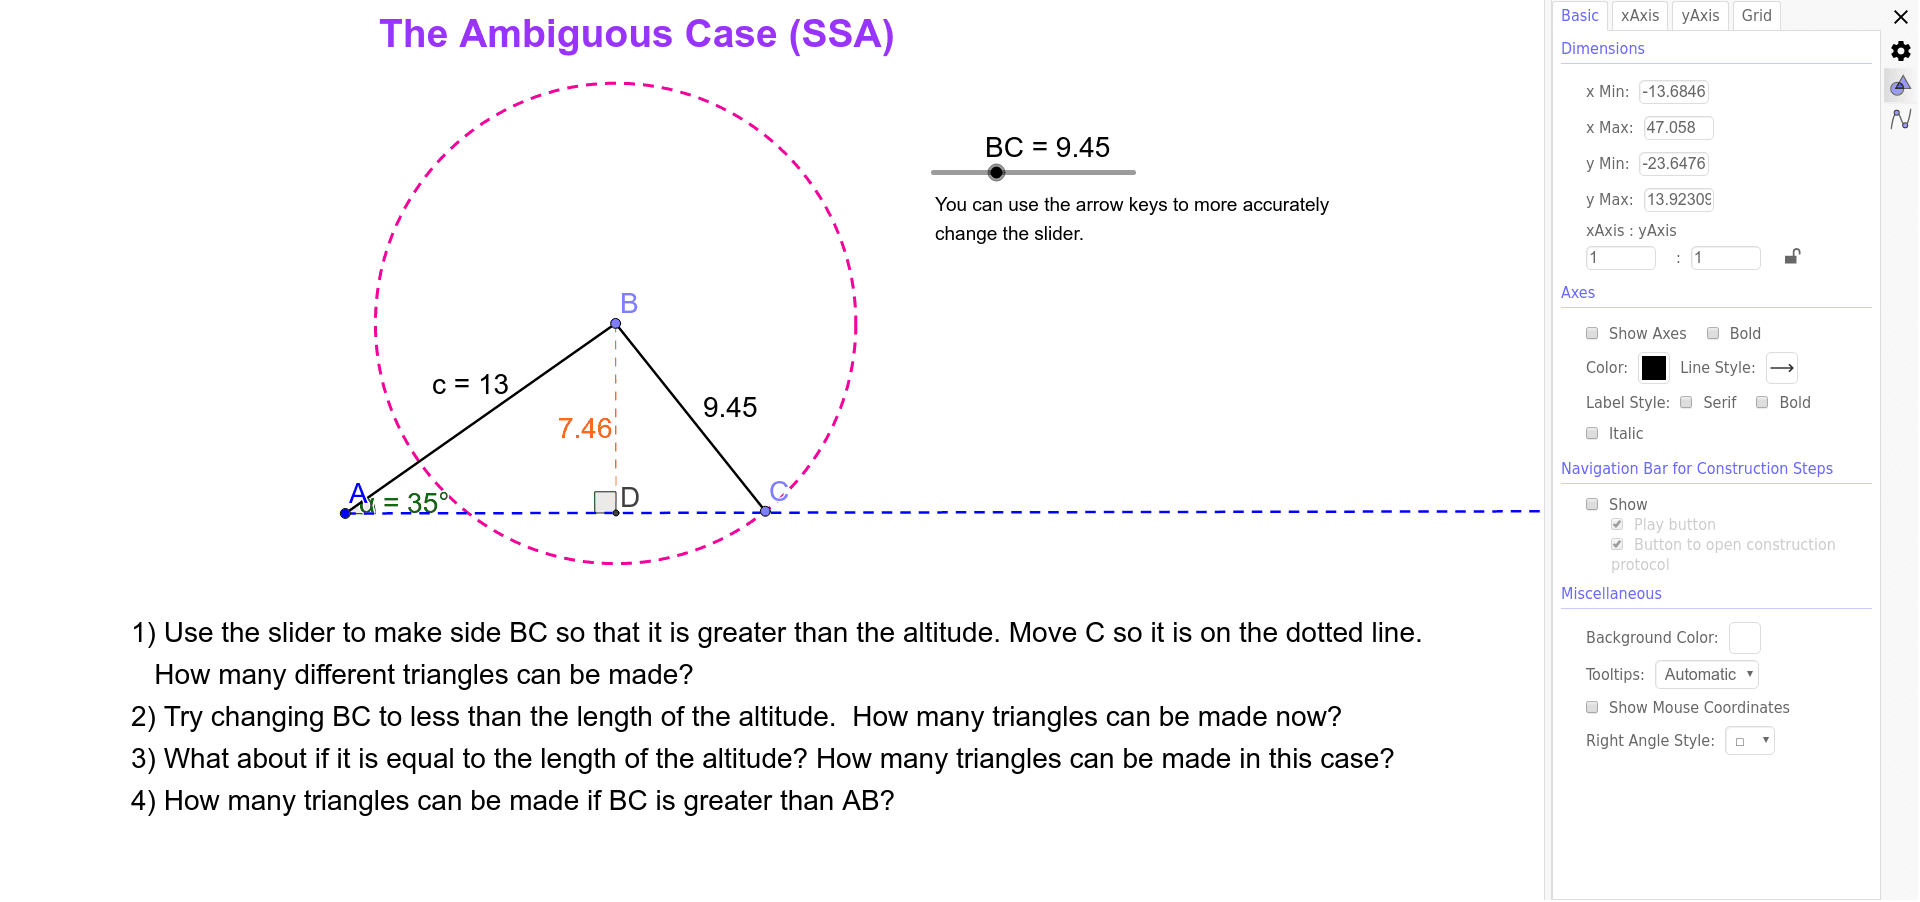 how to solve ssa ambiguous case